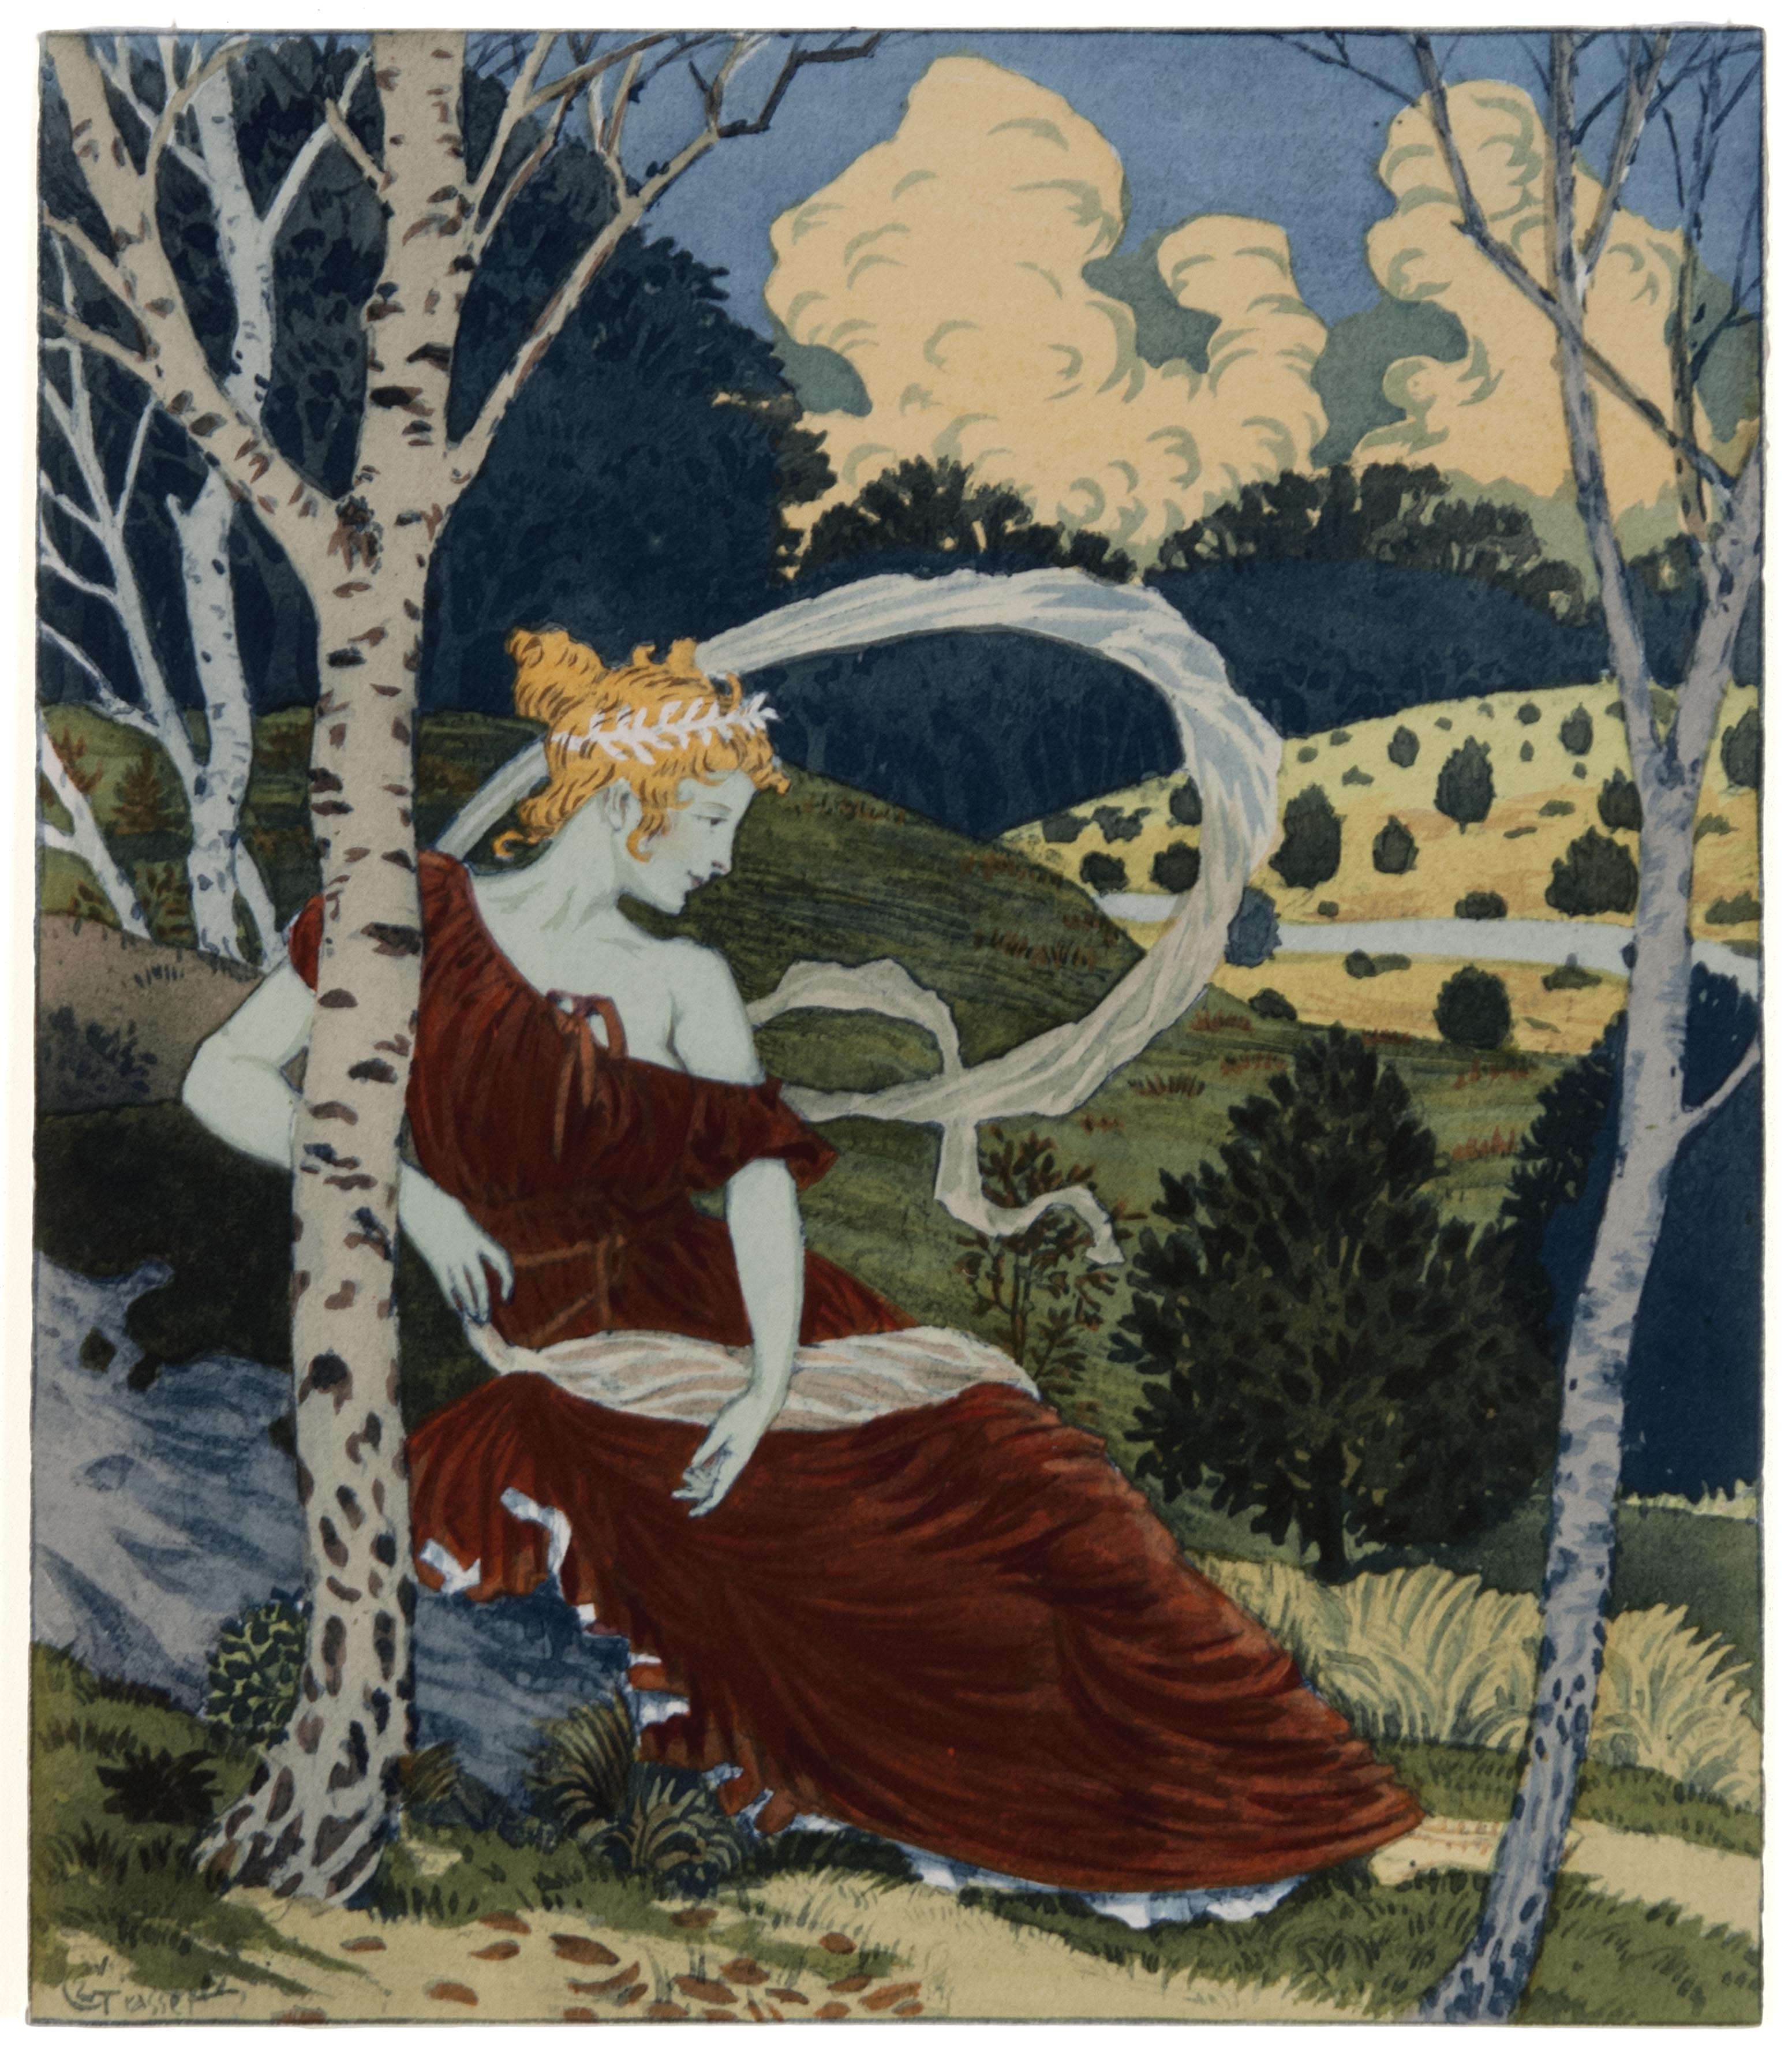 Eugène Grasset, In the Forest, 1898-1899